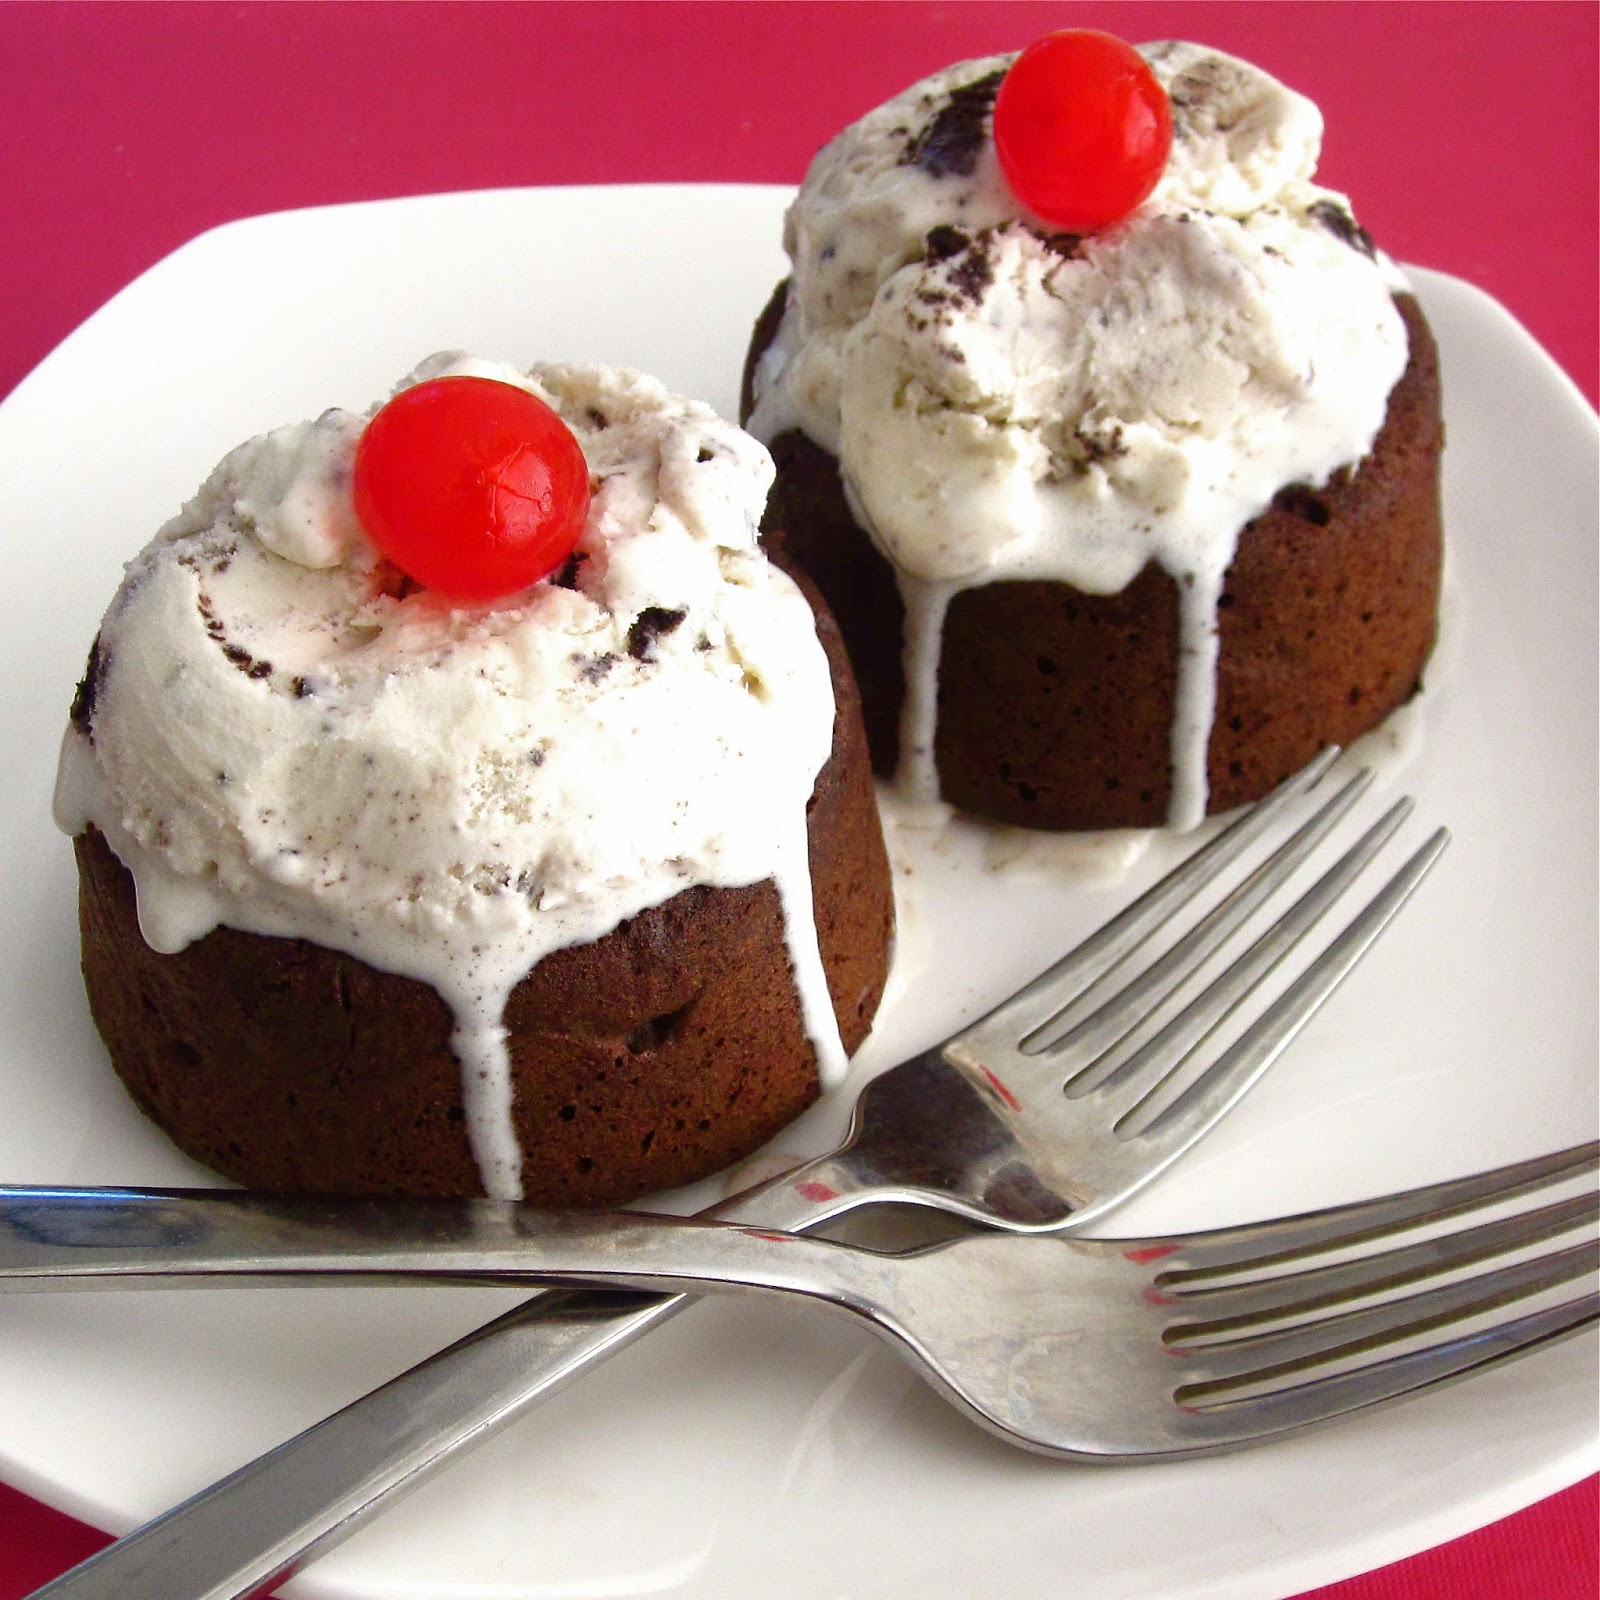 http://blog.dollhousebakeshoppe.com/2012/01/brownie-sundaes.html